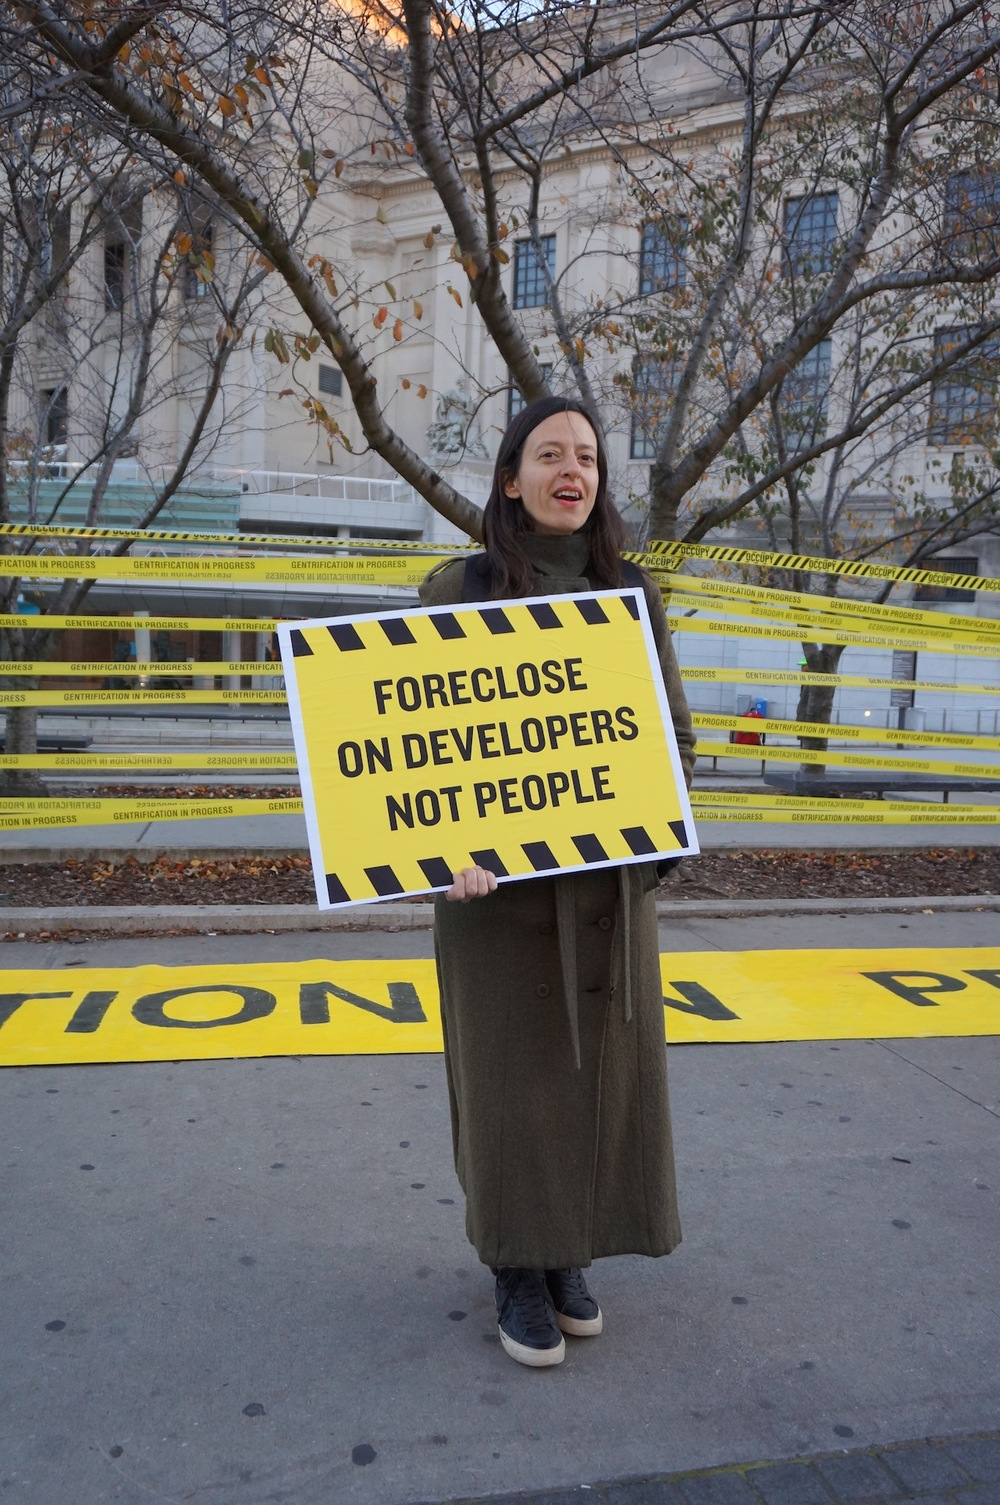 Tamara Zahaykevich of the Artist Studio Affordability Project, taken from Hyperallergic.